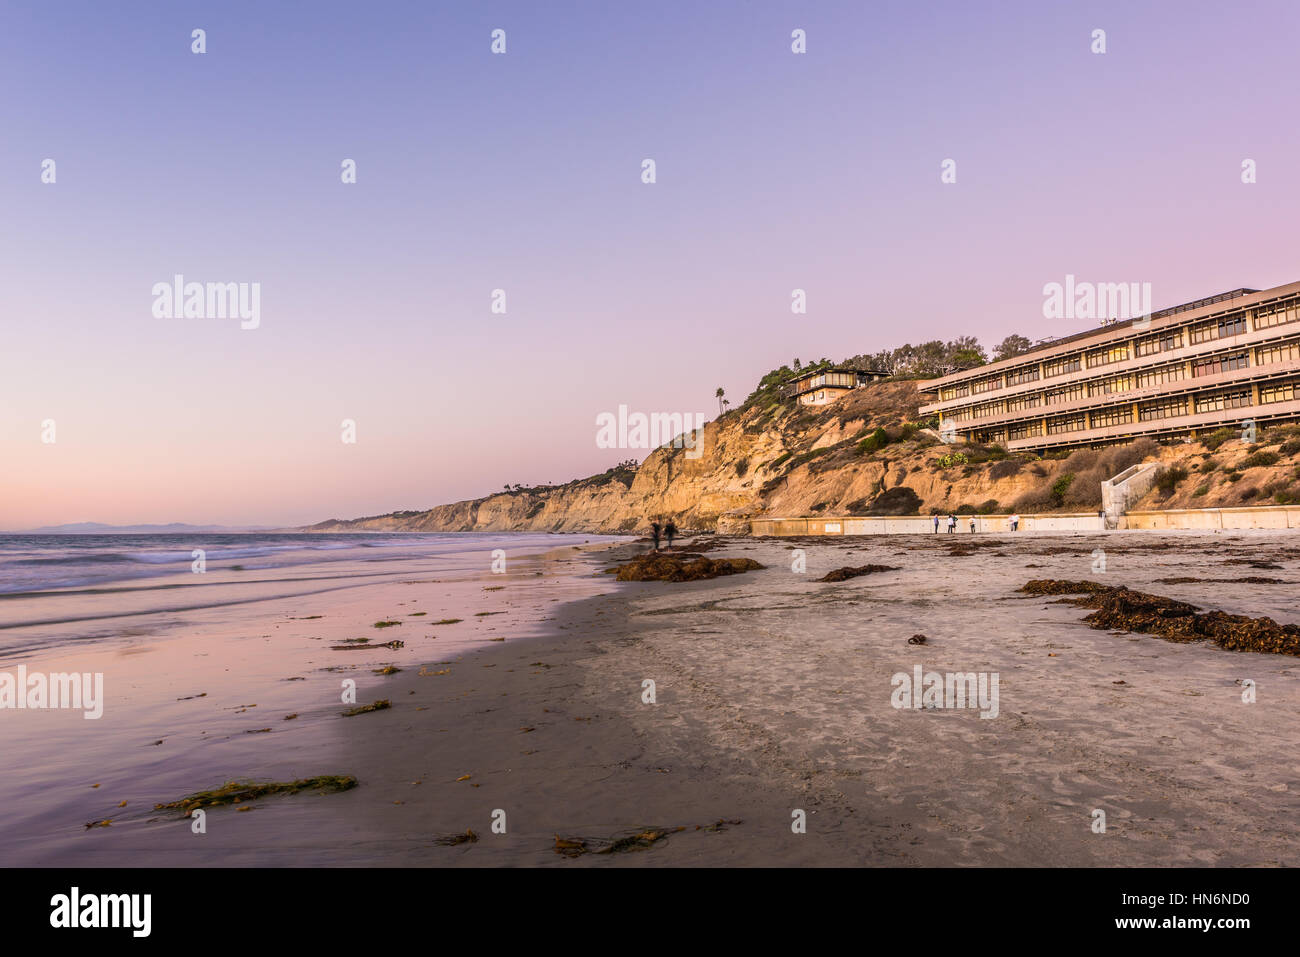 La Jolla, USA - November 7, 2015: Purple sunset on beach with Hubbs Hall at Scripps Institute of Oceanography in - Stock Image